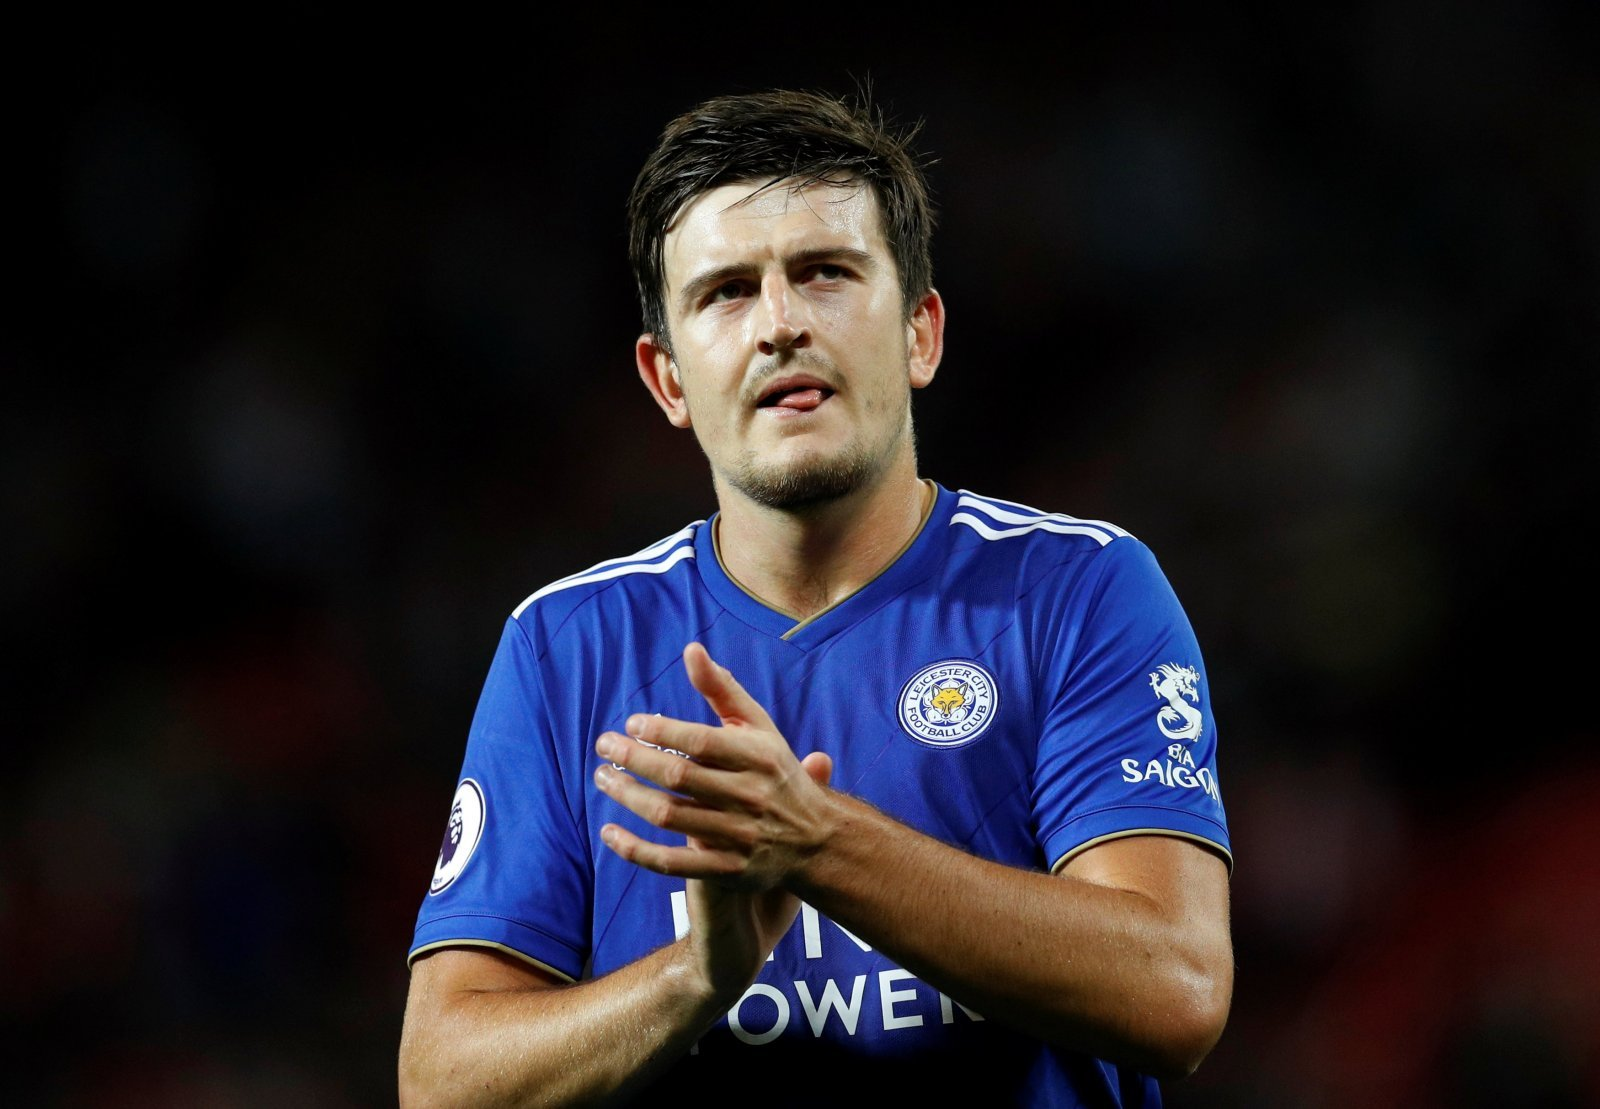 New deals for Wilfred Ndidi and Harry Maguire are exactly what Leicester need